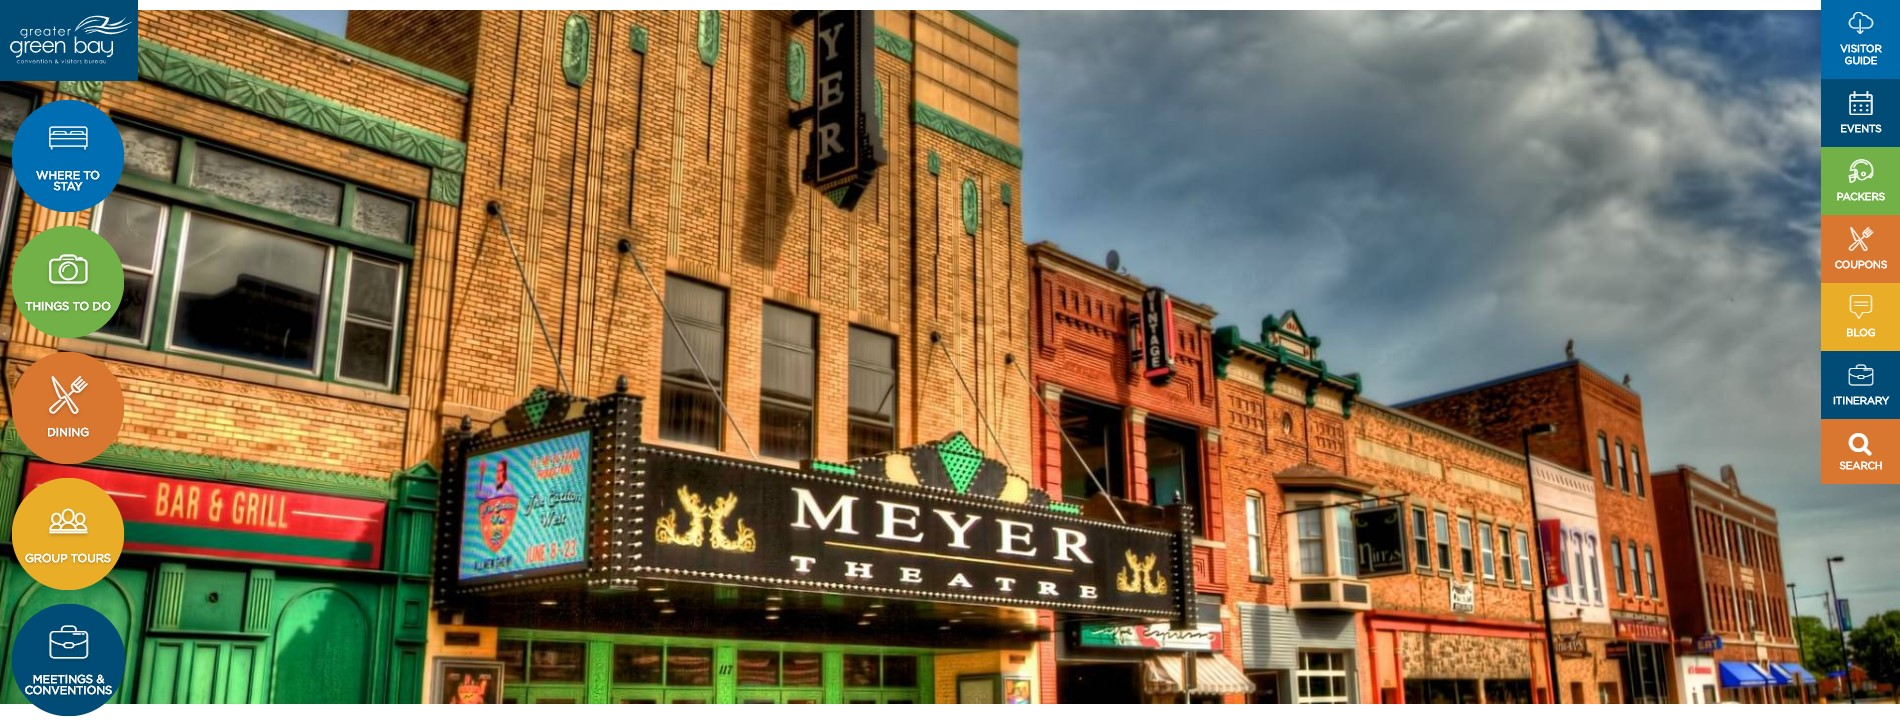 Greater Green Bay Convention & Visitors Bureau Website